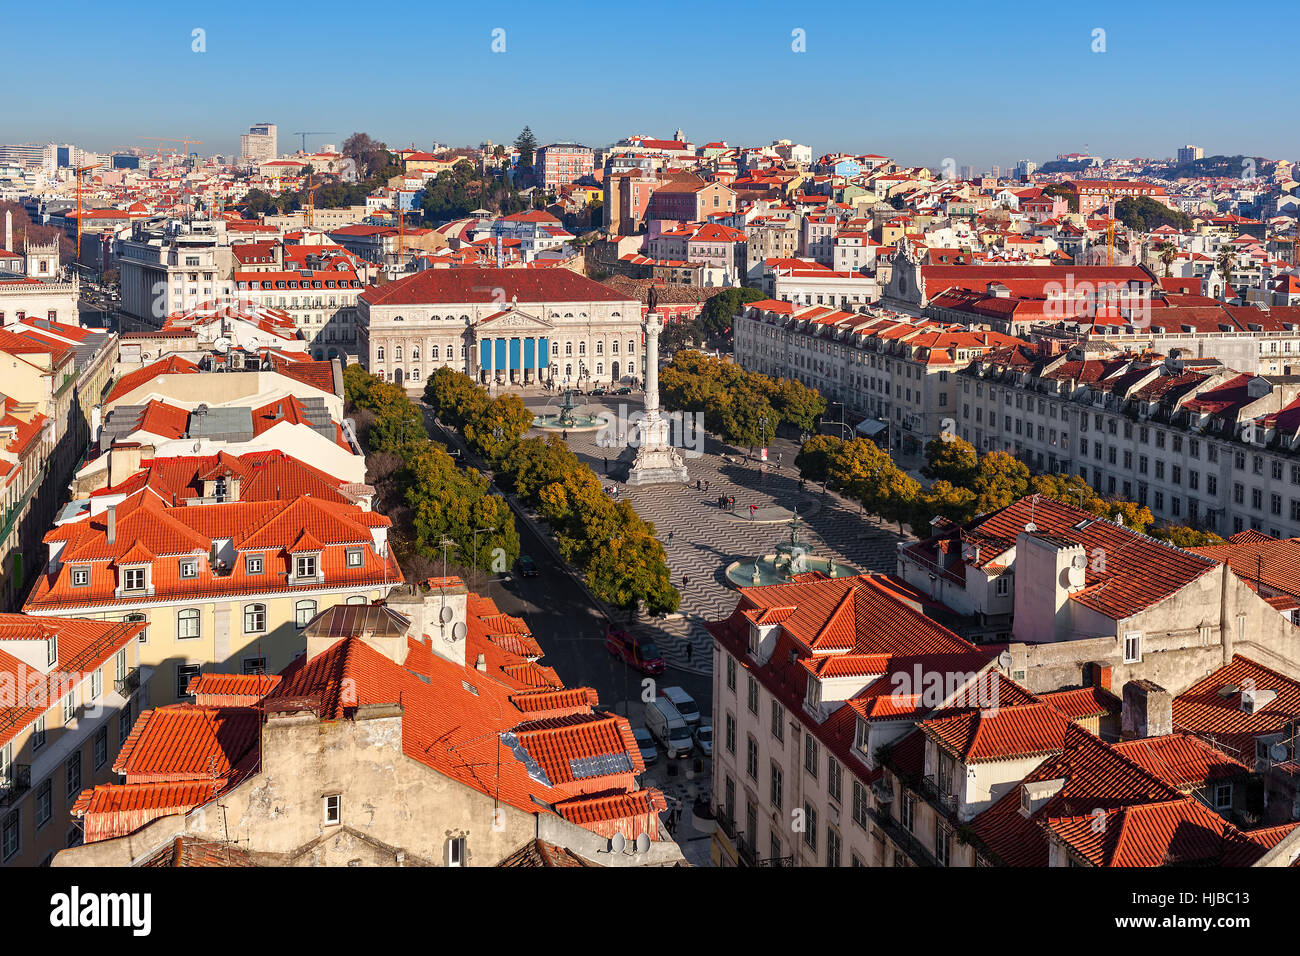 Vue de dessus sur la place Rossio un toits rouges à Lisbonne, Portugal. Photo Stock